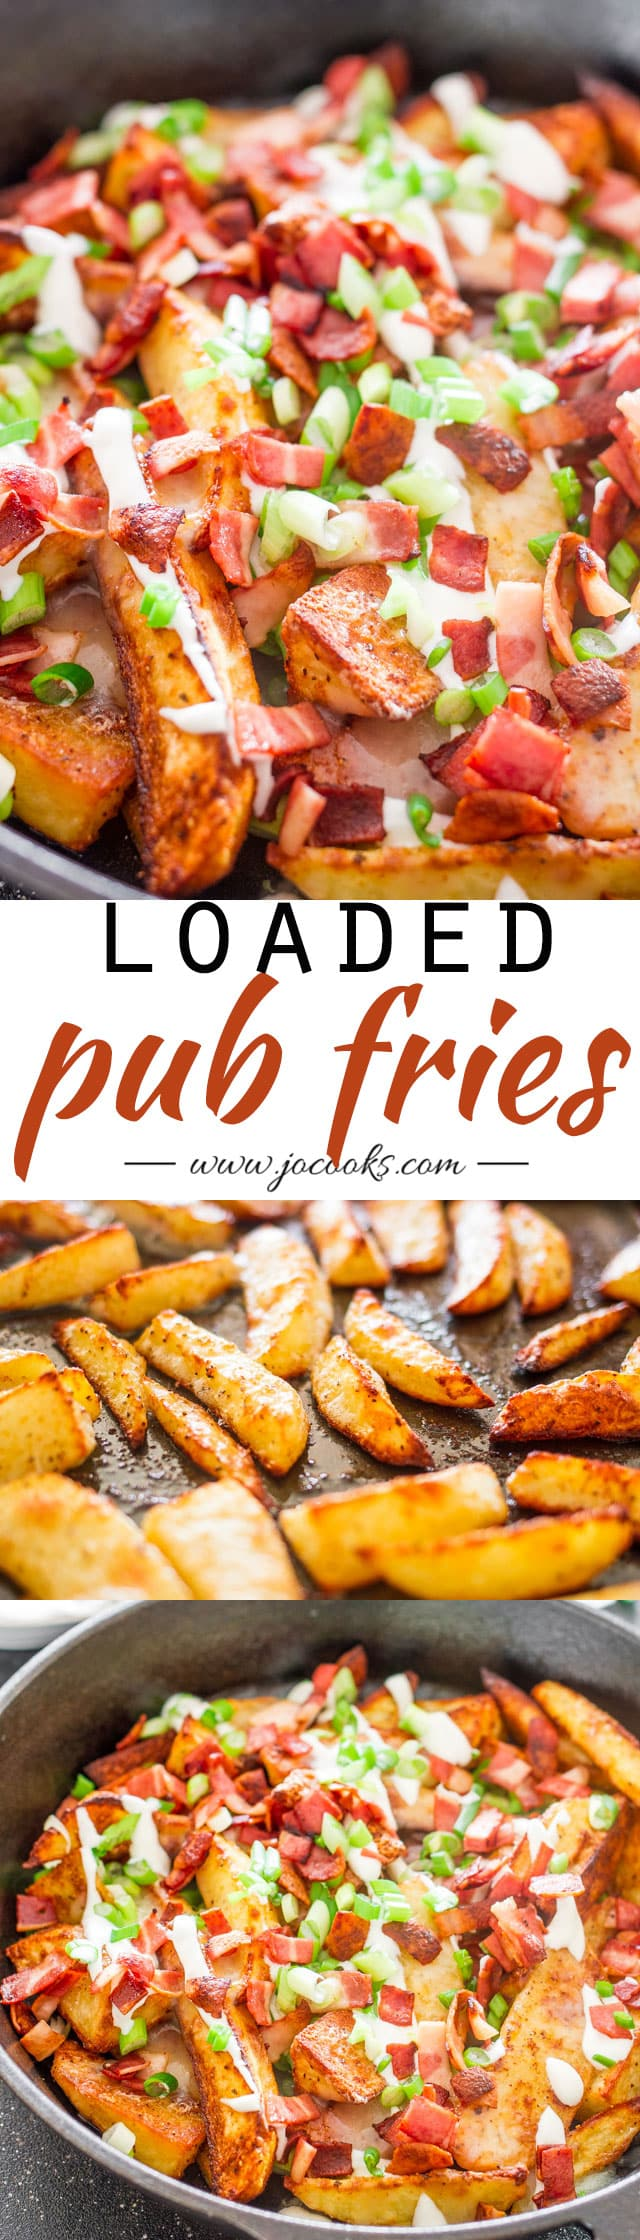 loaded-pub-fries-collage